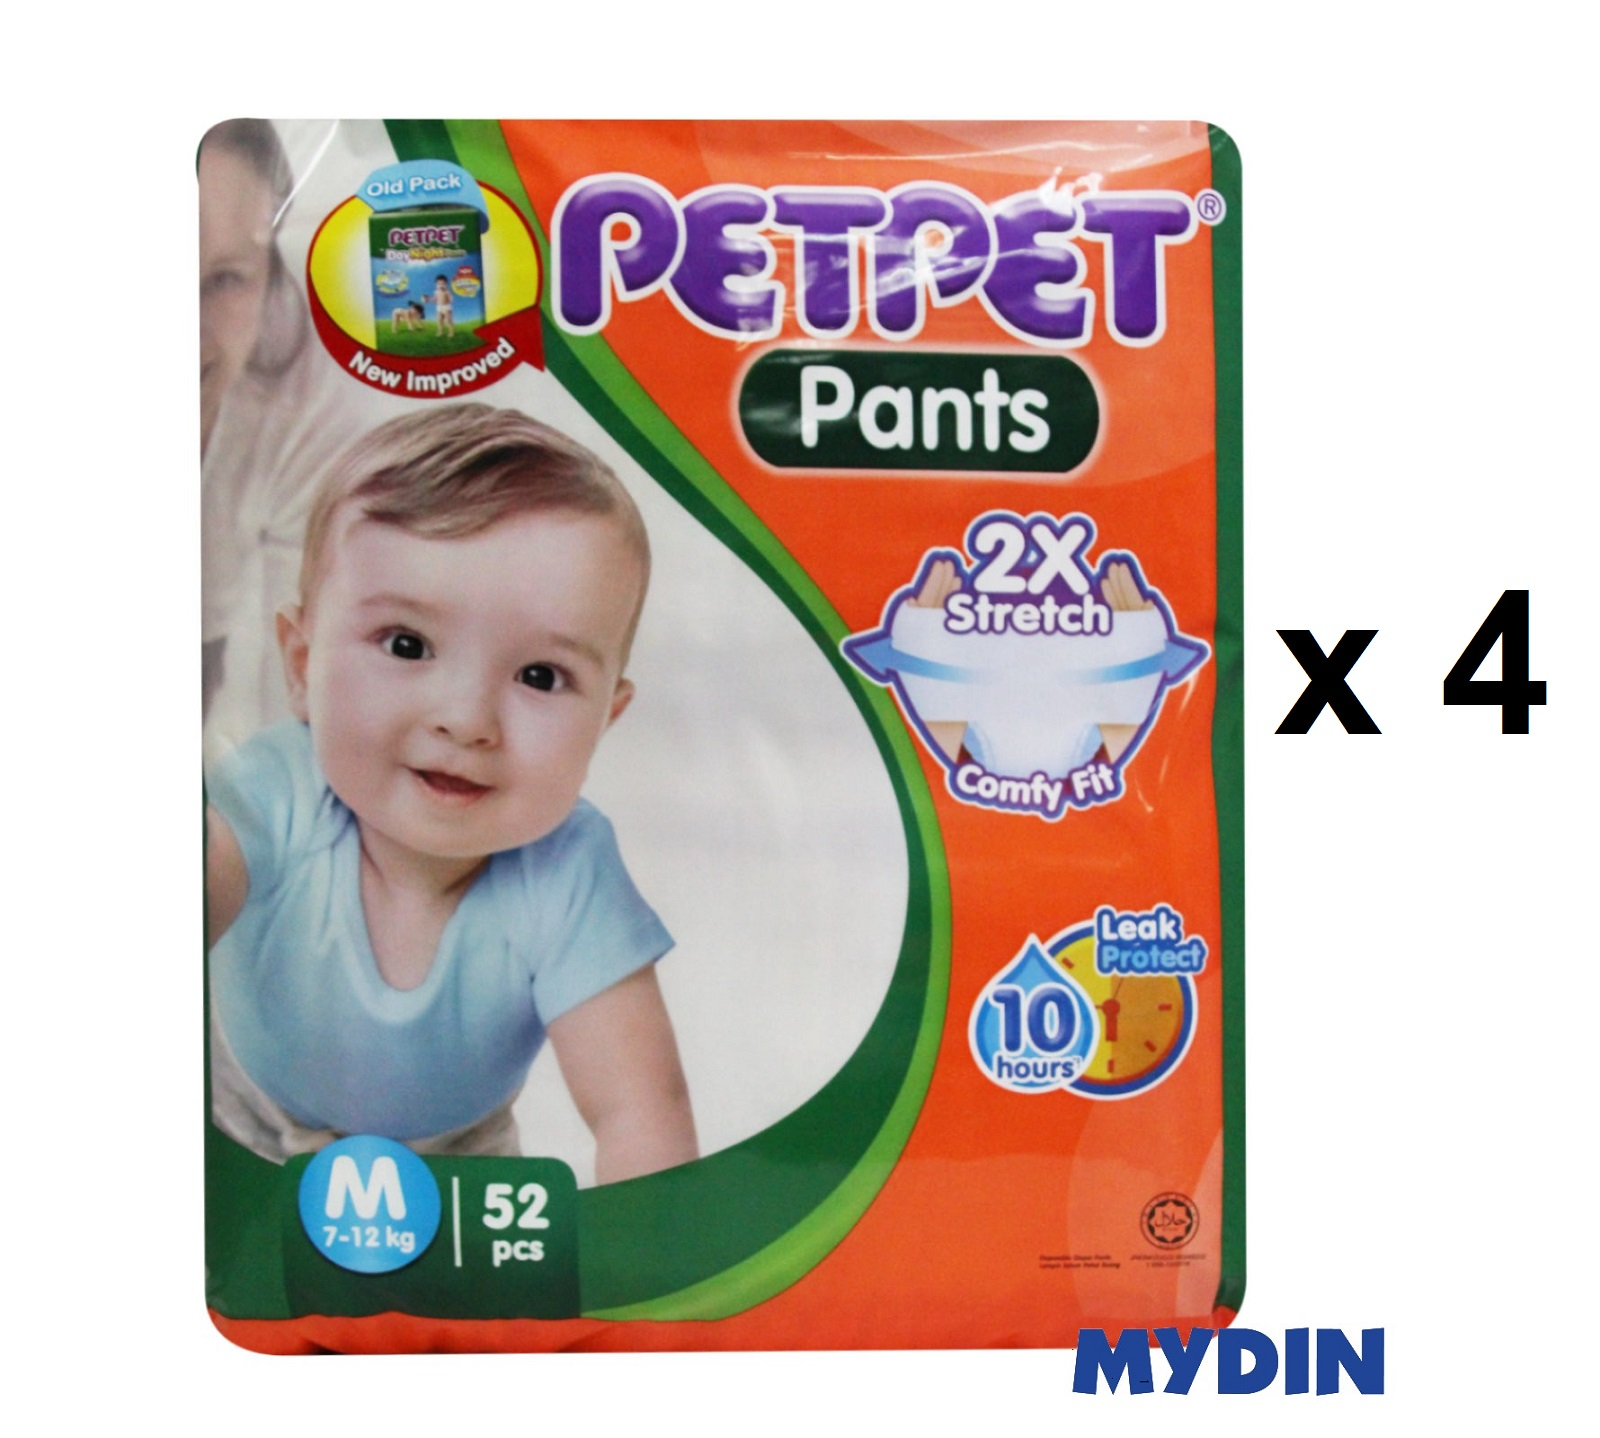 Pet Pet Pants Jumbo M52 (4 Packs)